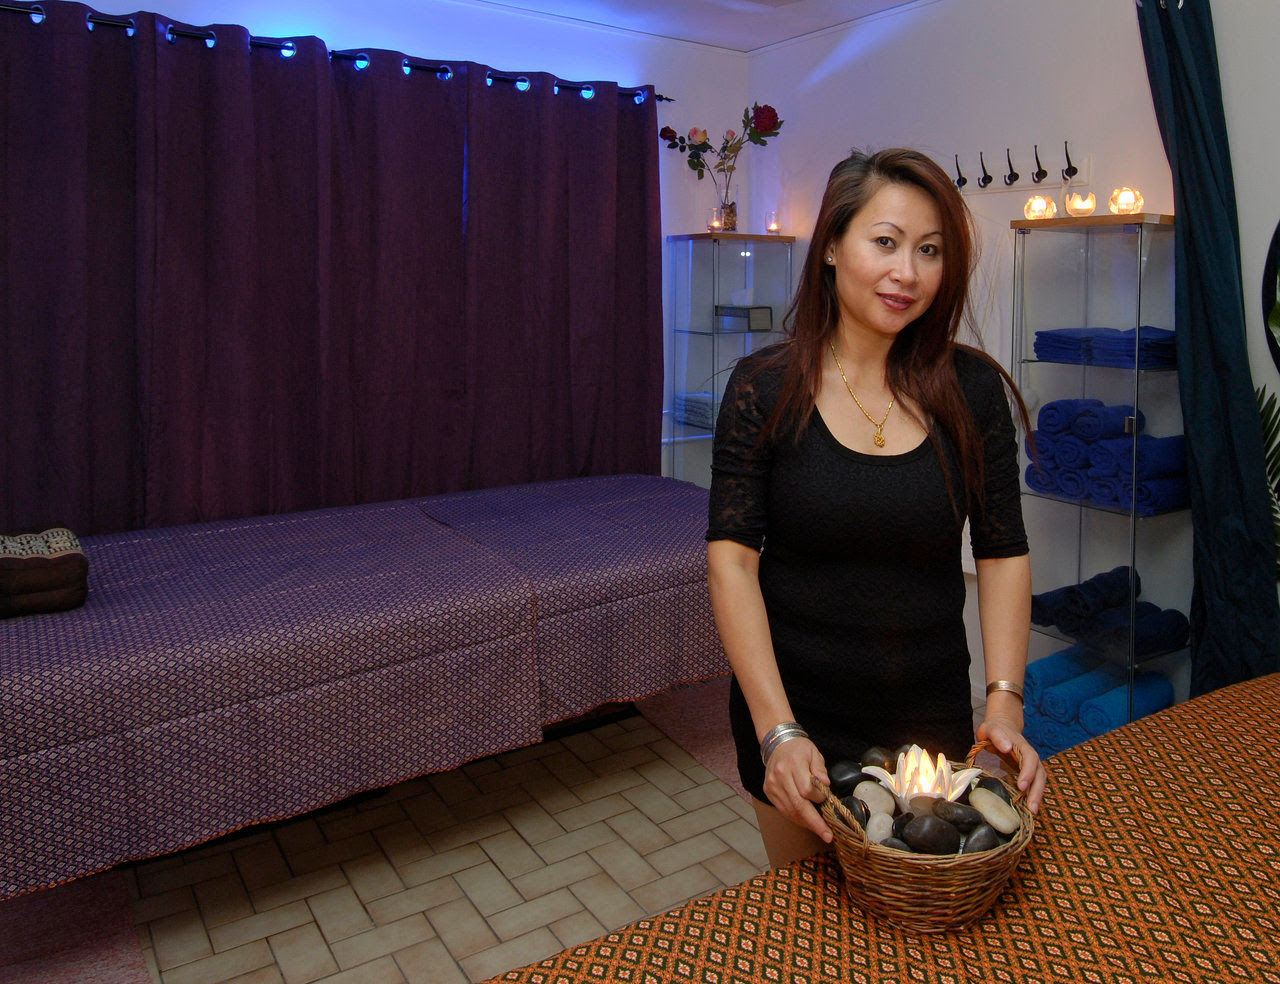 svensk sex tube malmo thai massage